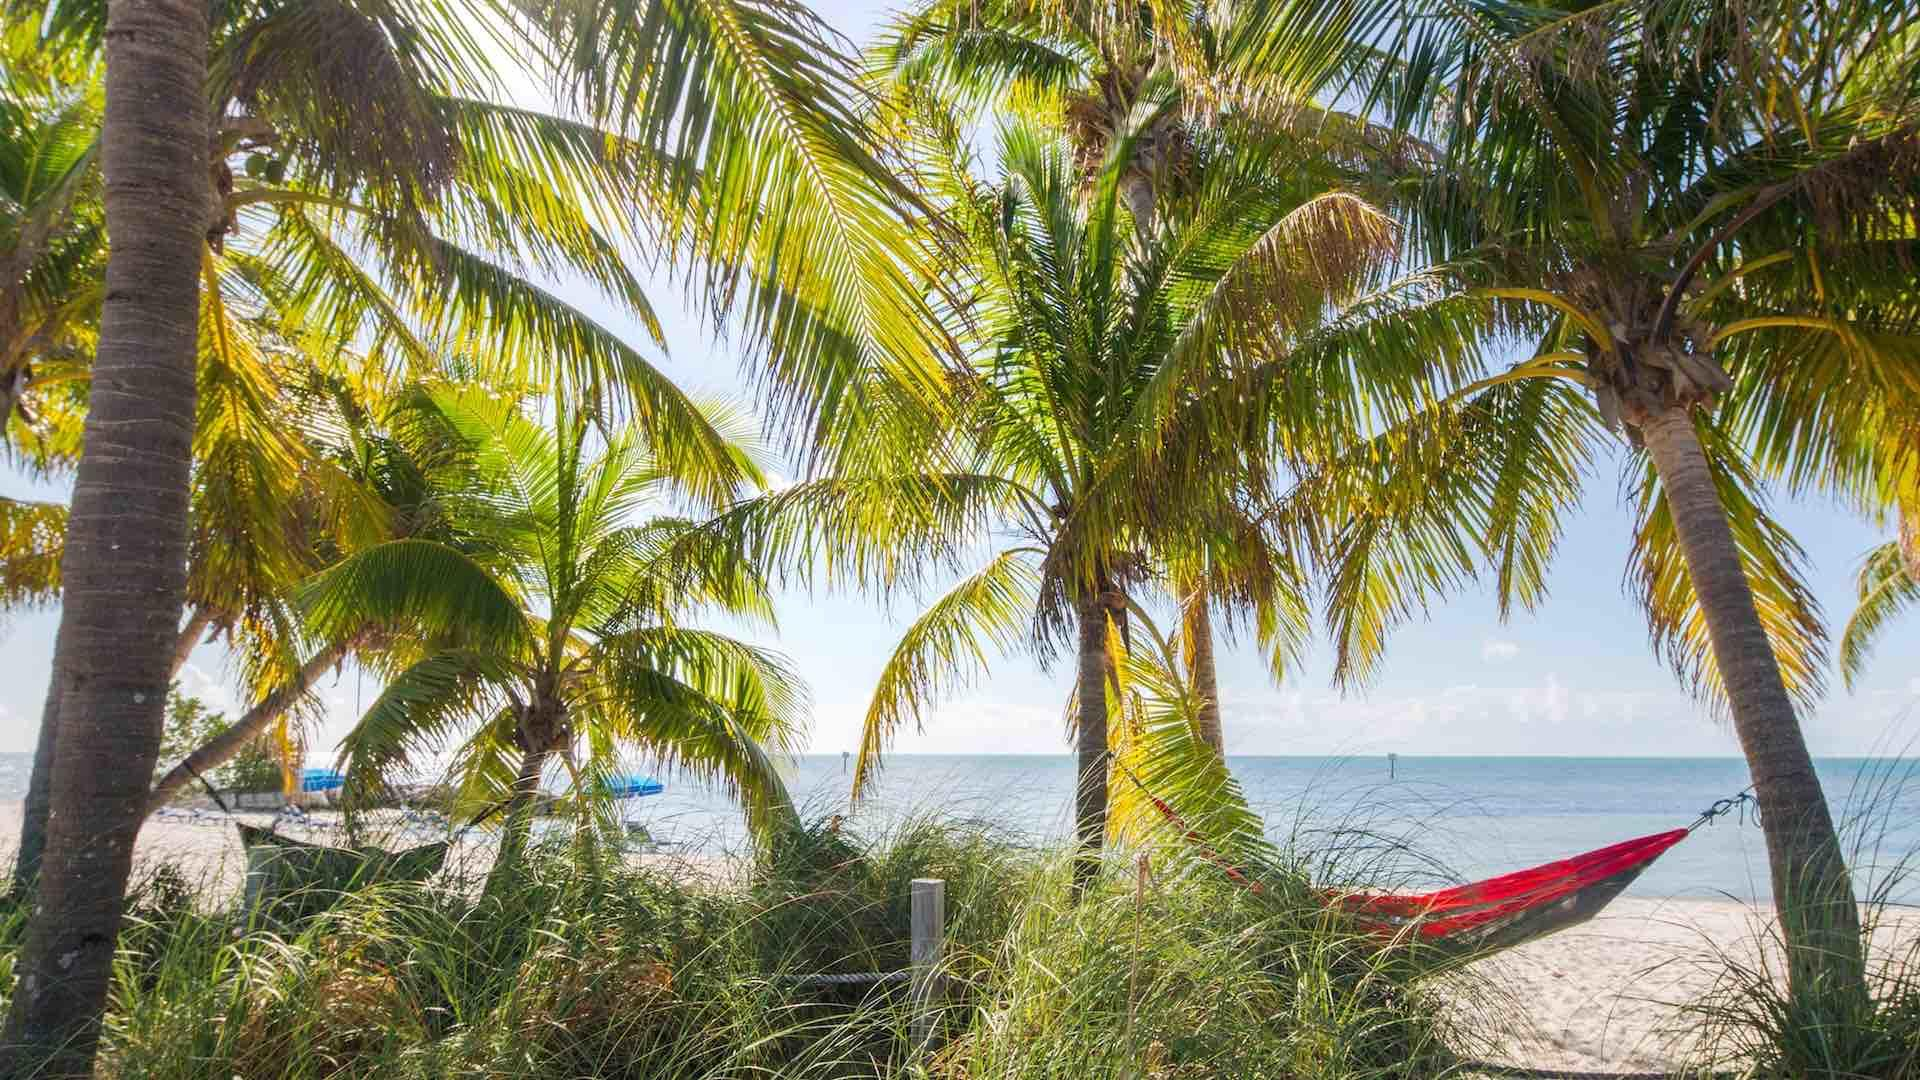 Catch some shade under the palms when you've had enough sun...